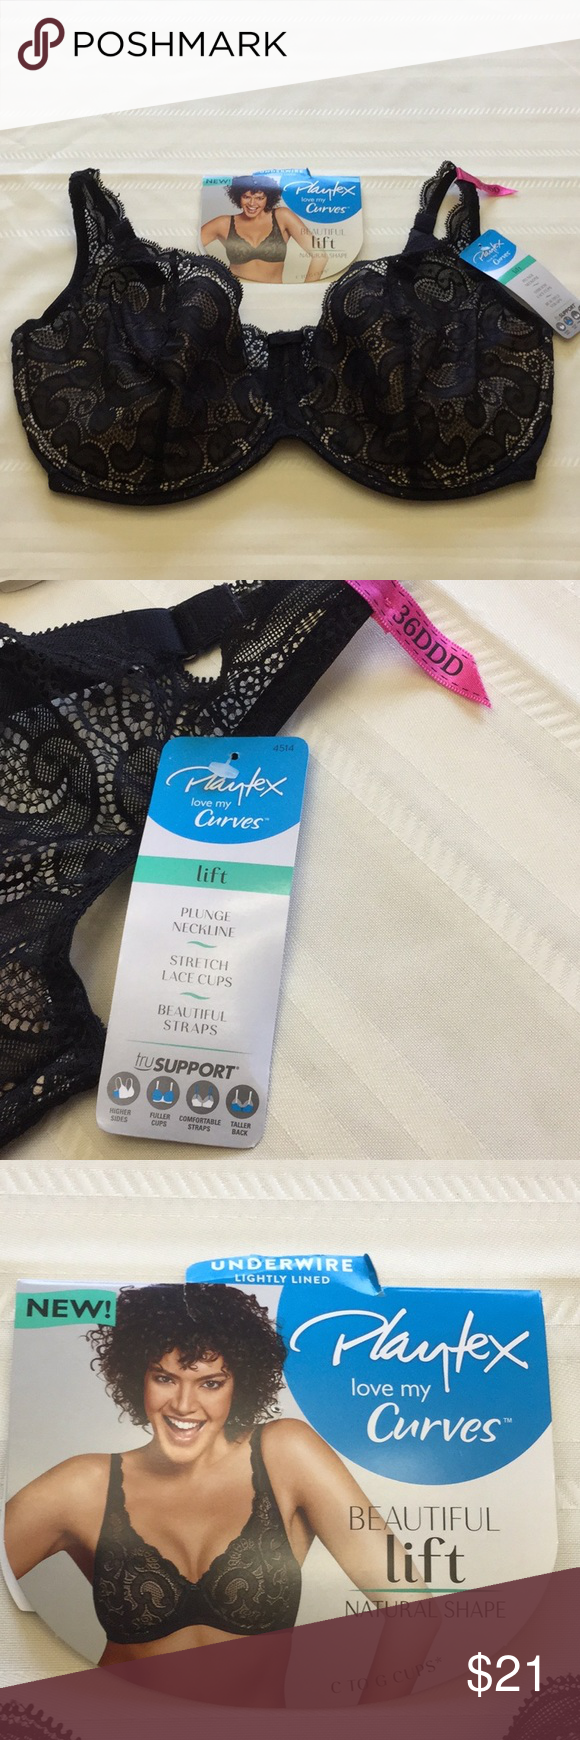 36a4bf301b Playtex Underwire Lightly Lined Lift Lace Bra Playtex love my Curves  Beautiful Lift Bra Underwire Lightly